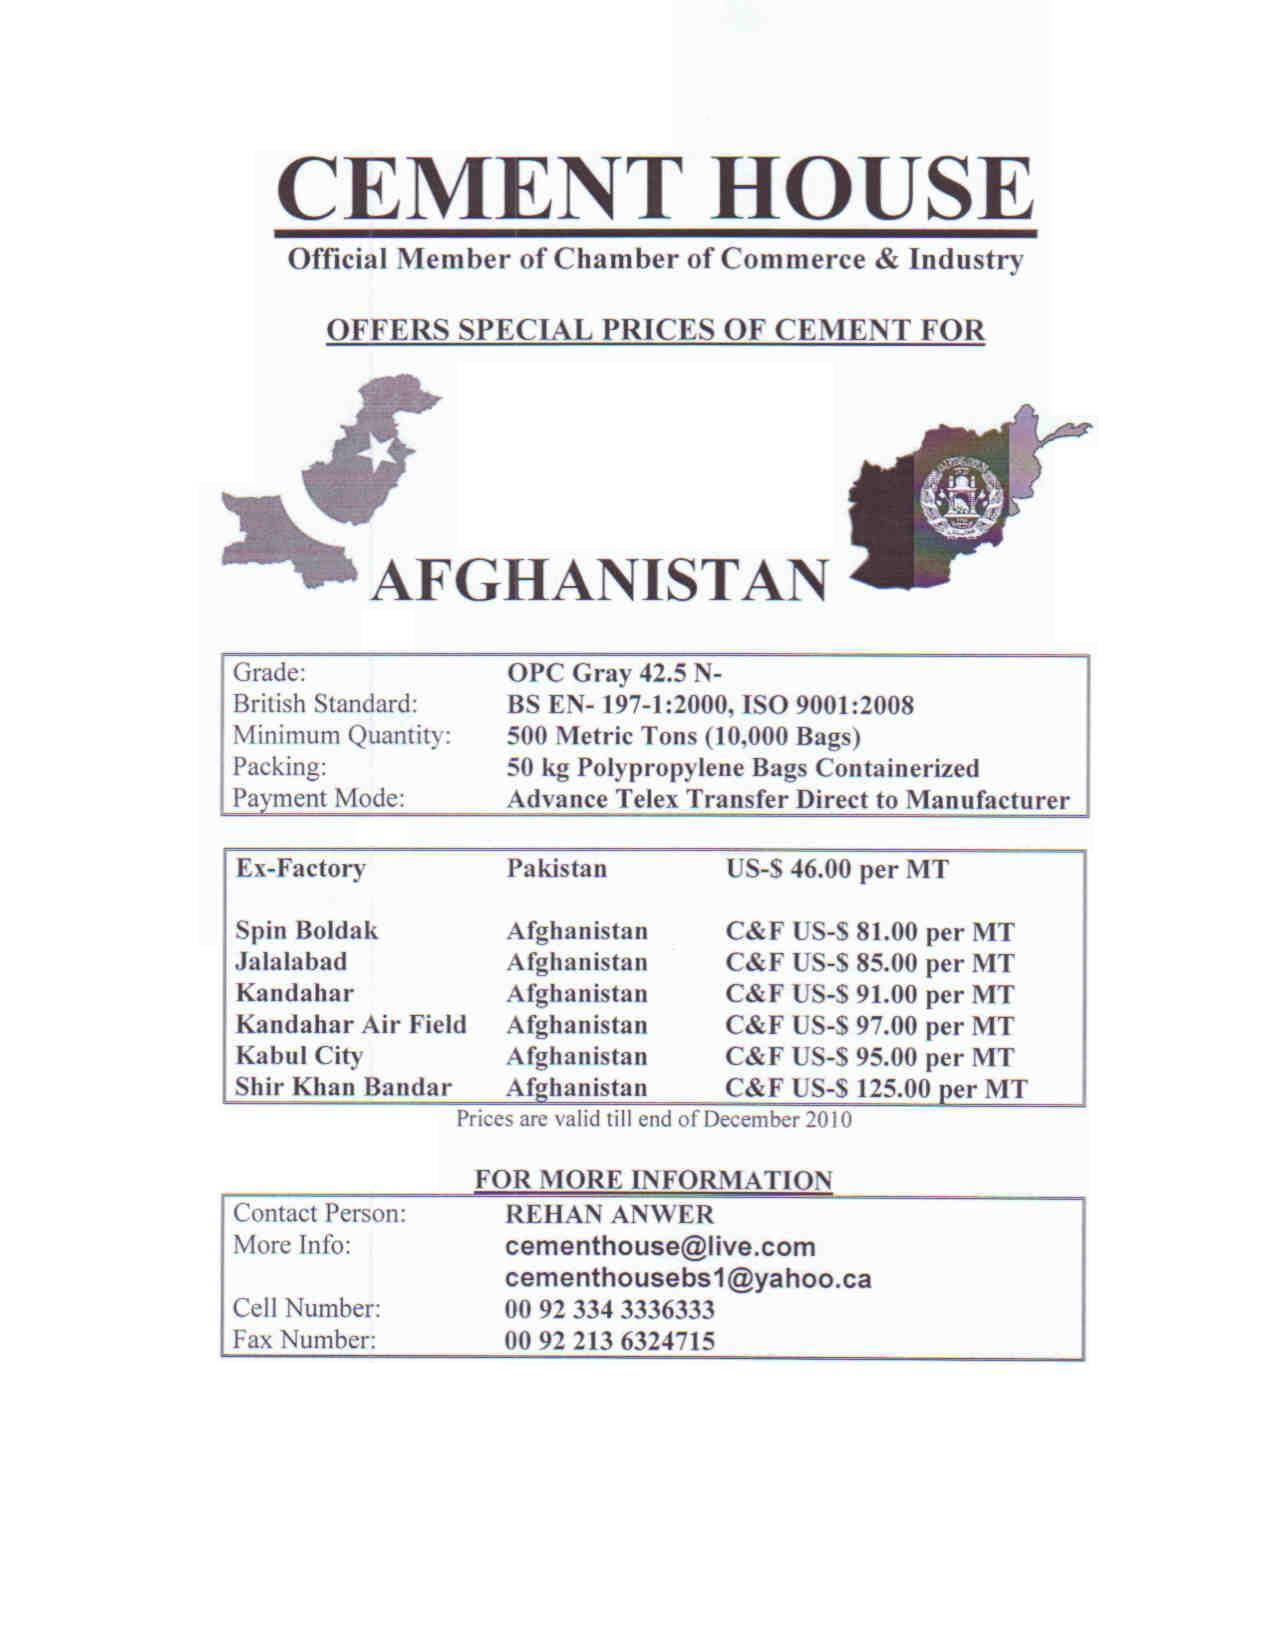 CEMENT FOR AFGHANISTAN